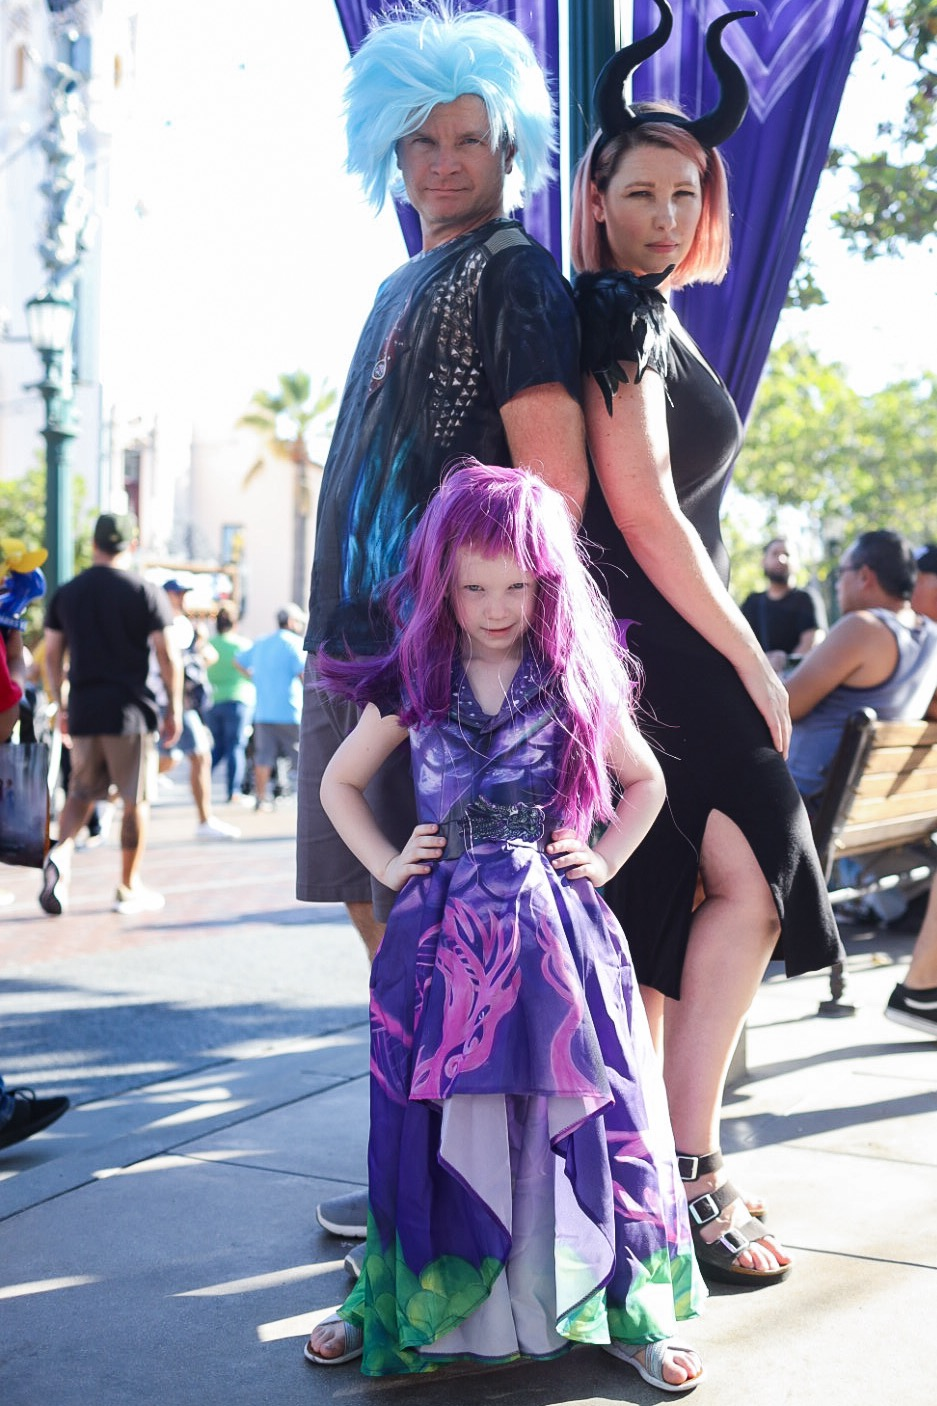 Planning a Descendants Family Halloween Costume? This one is EPIC!